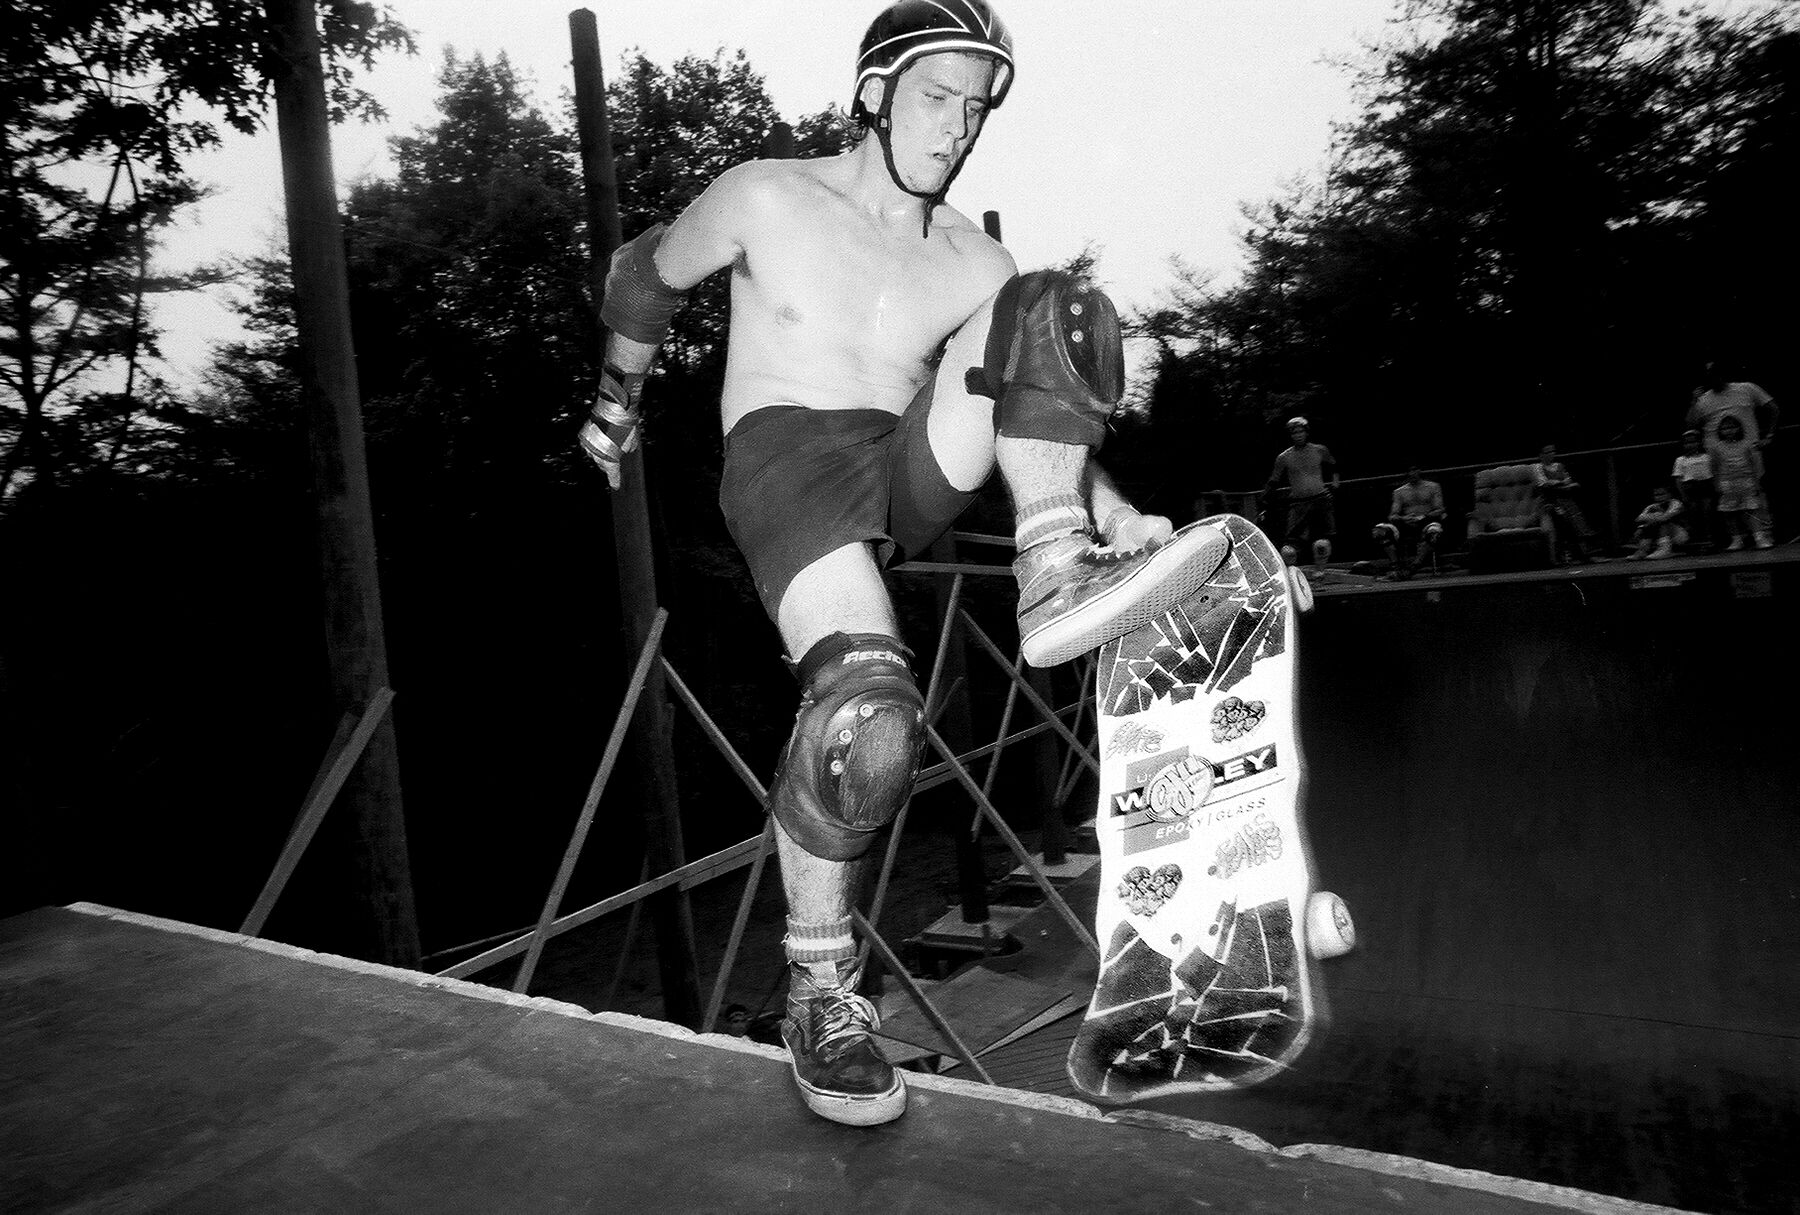 Skater Mike Mapp helped build Cedar Crest Country Club's legendary ramp. (Photo Andy Bittner)